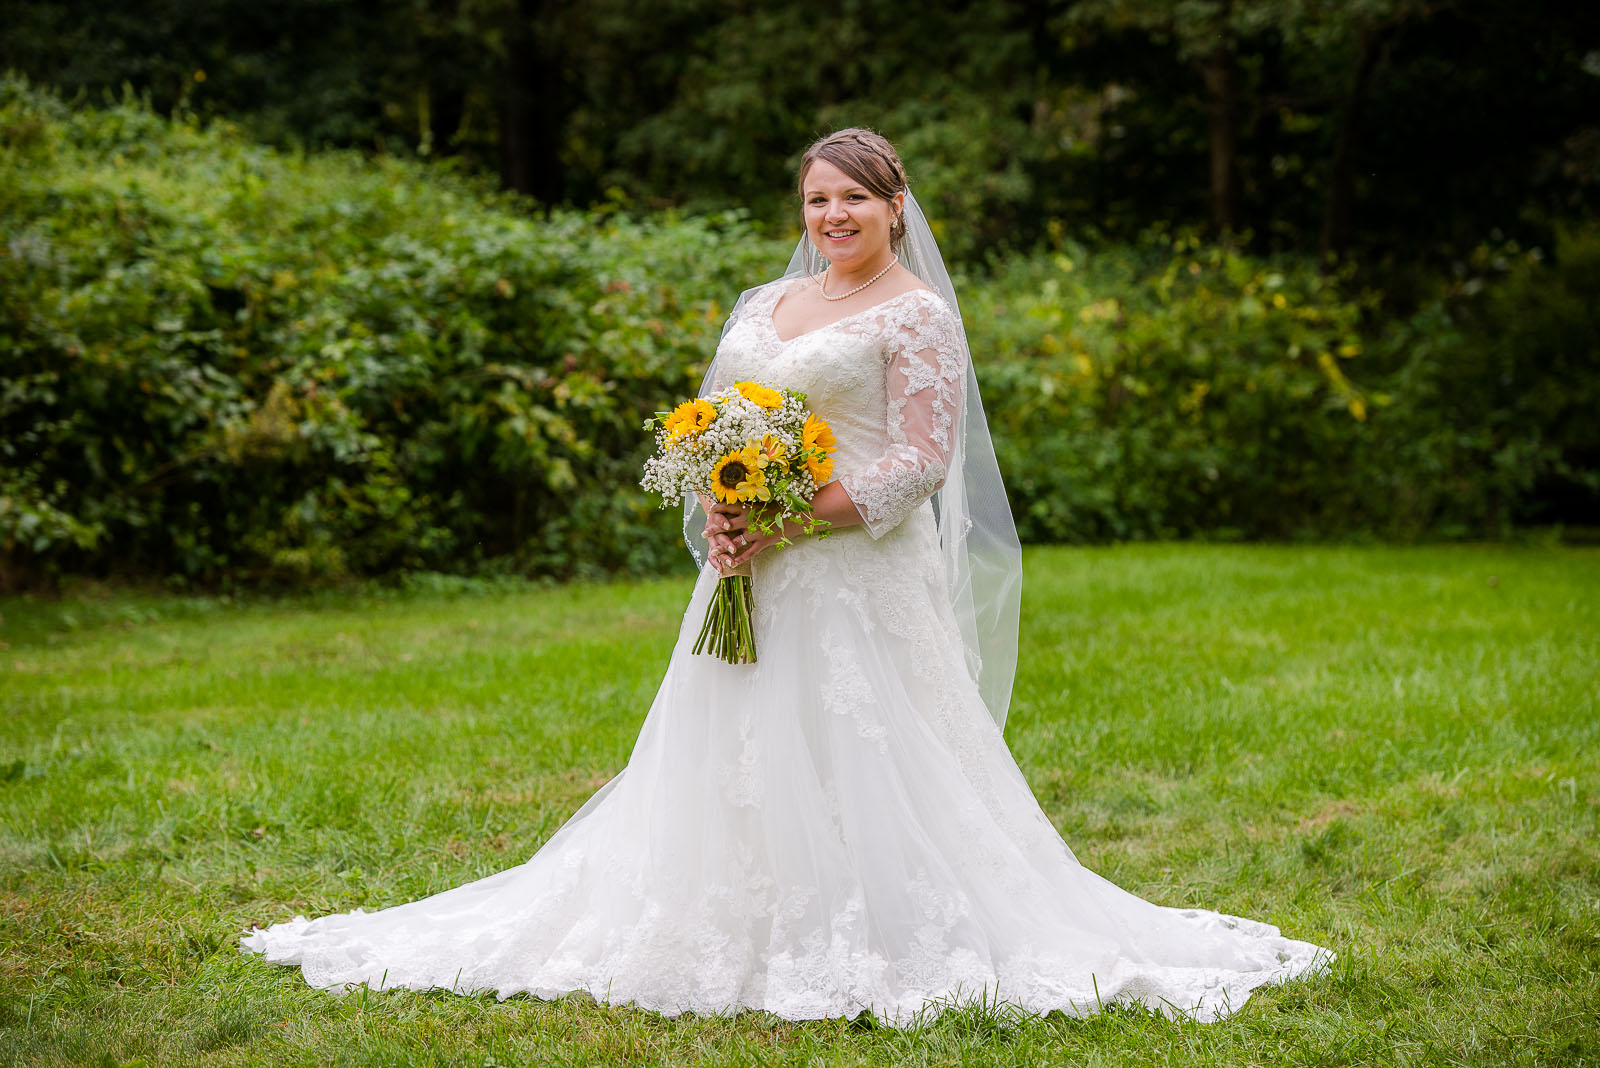 Eric_and_Christy_Photography_Blog_Wedding_Stacey_Geoff-31